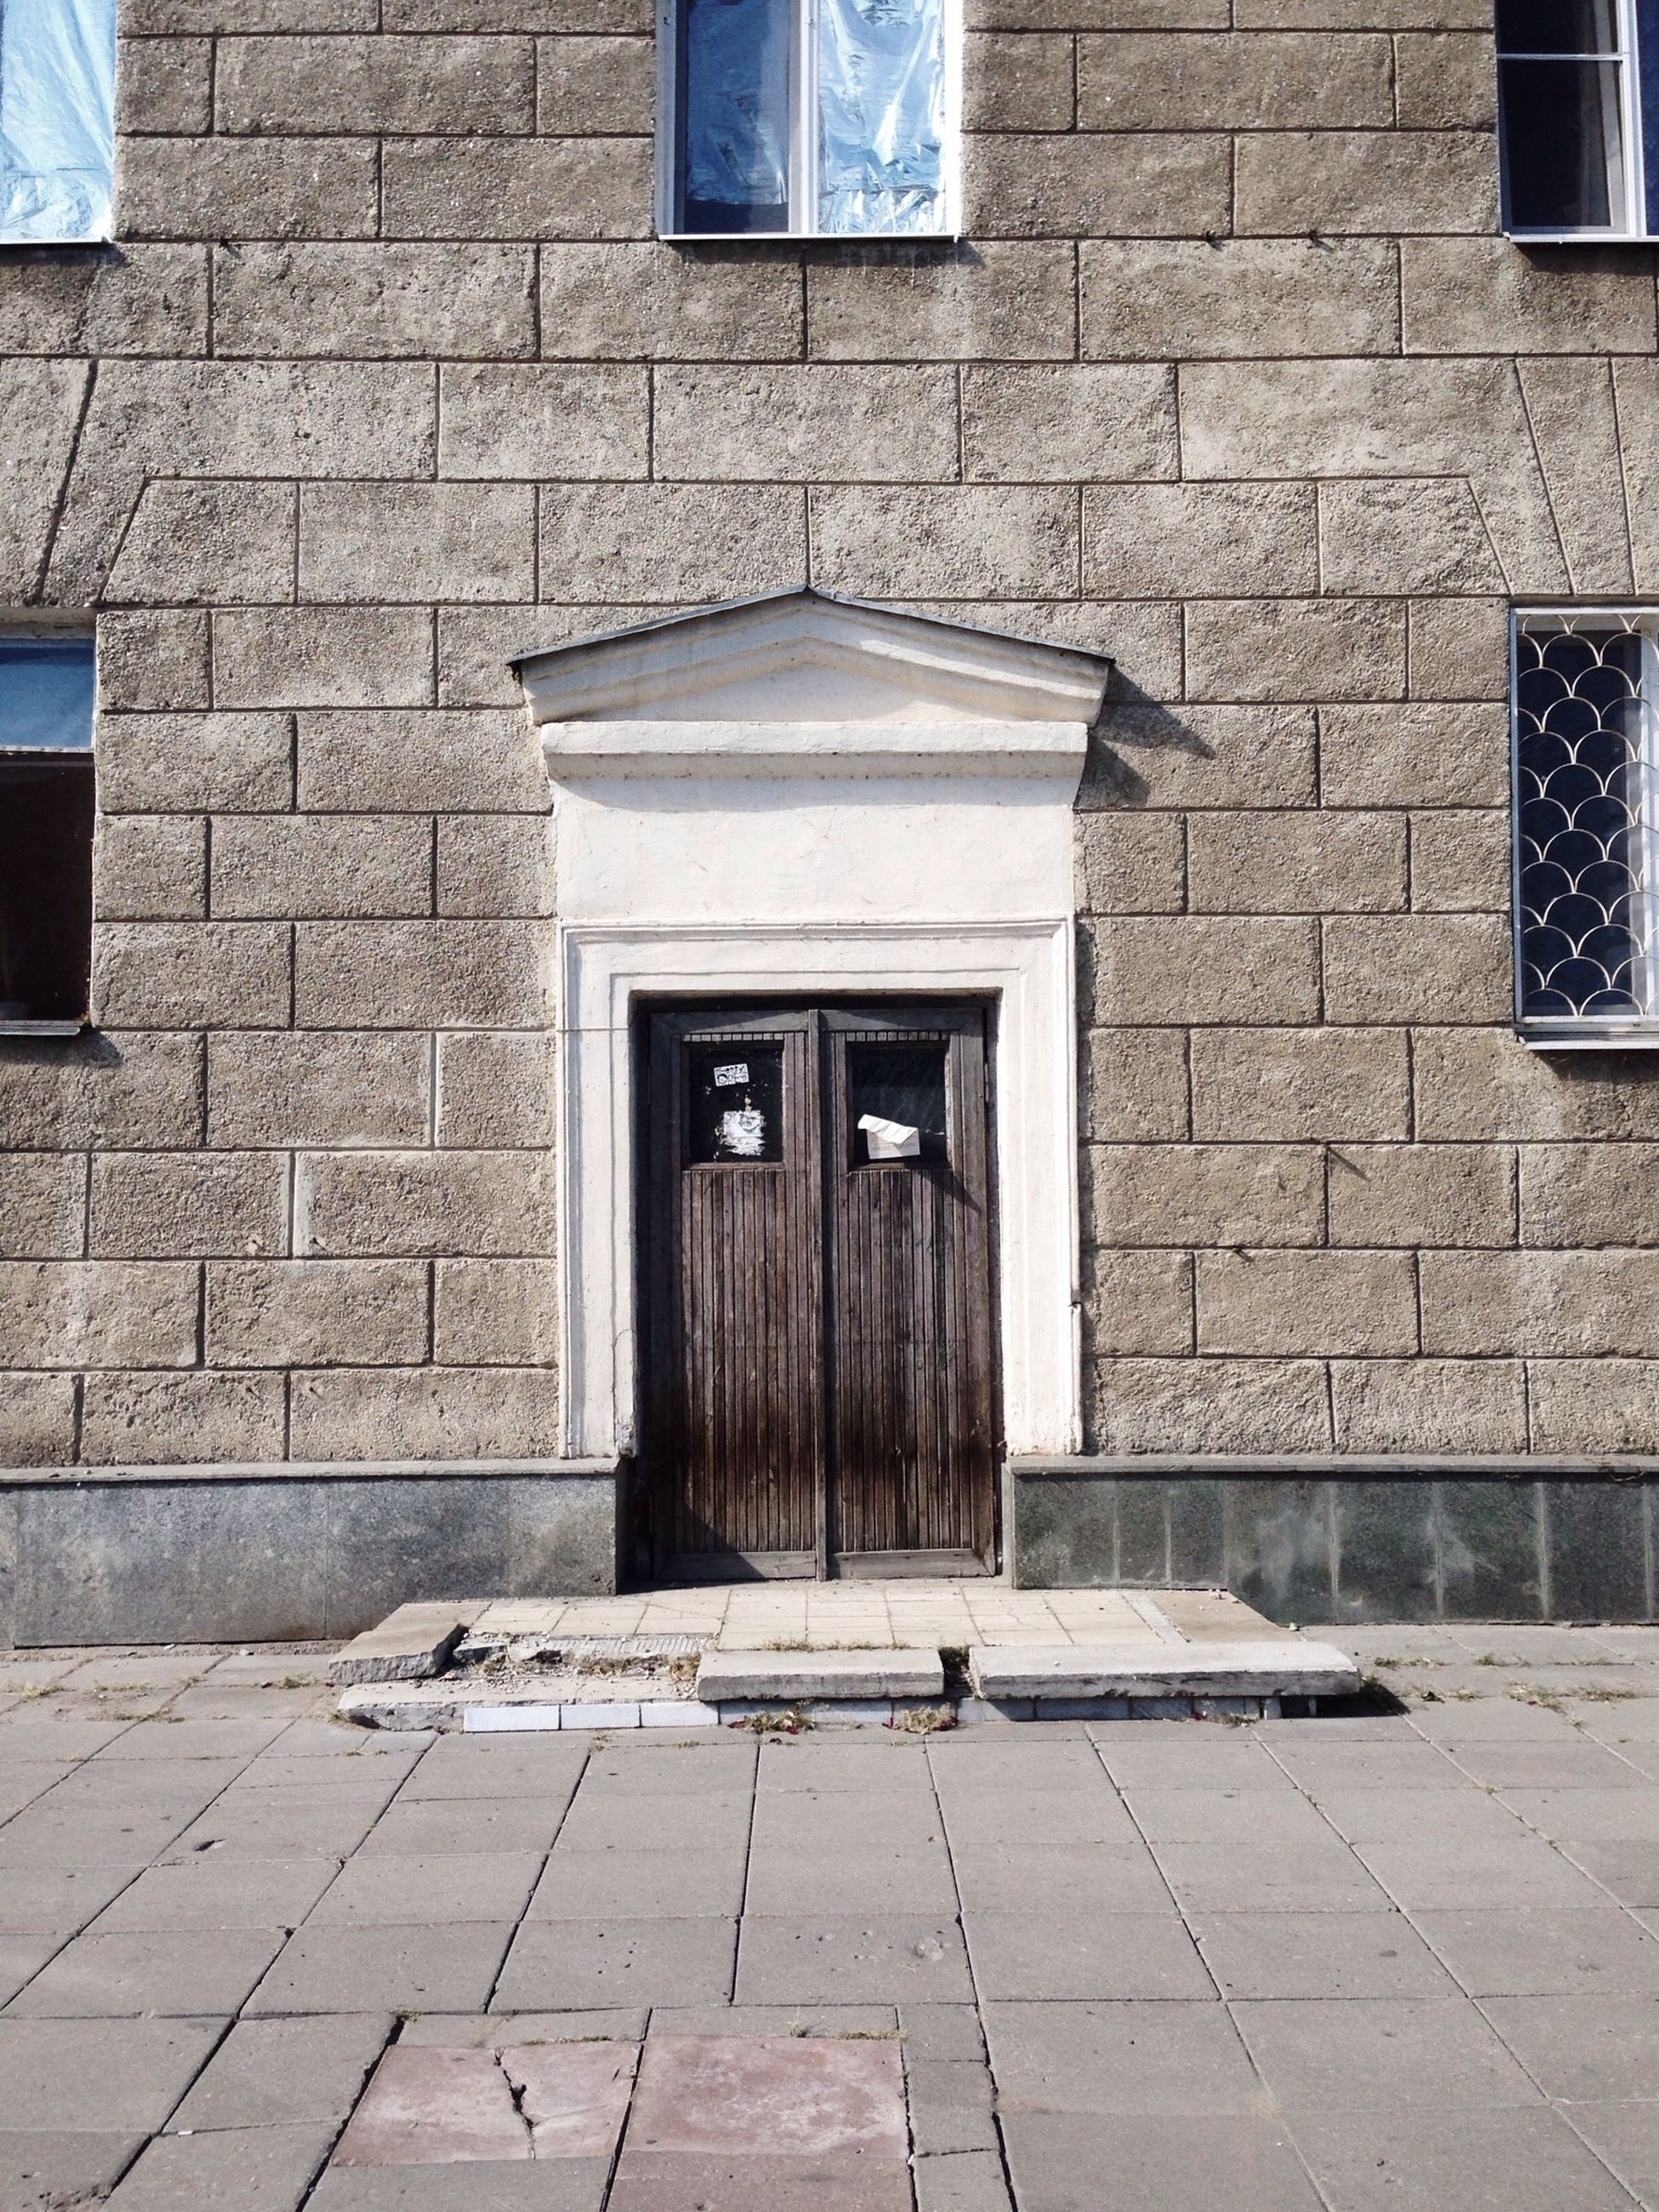 architecture, building exterior, built structure, window, brick wall, door, cobblestone, entrance, wall - building feature, house, building, facade, residential structure, stone wall, closed, residential building, sidewalk, day, wall, sunlight